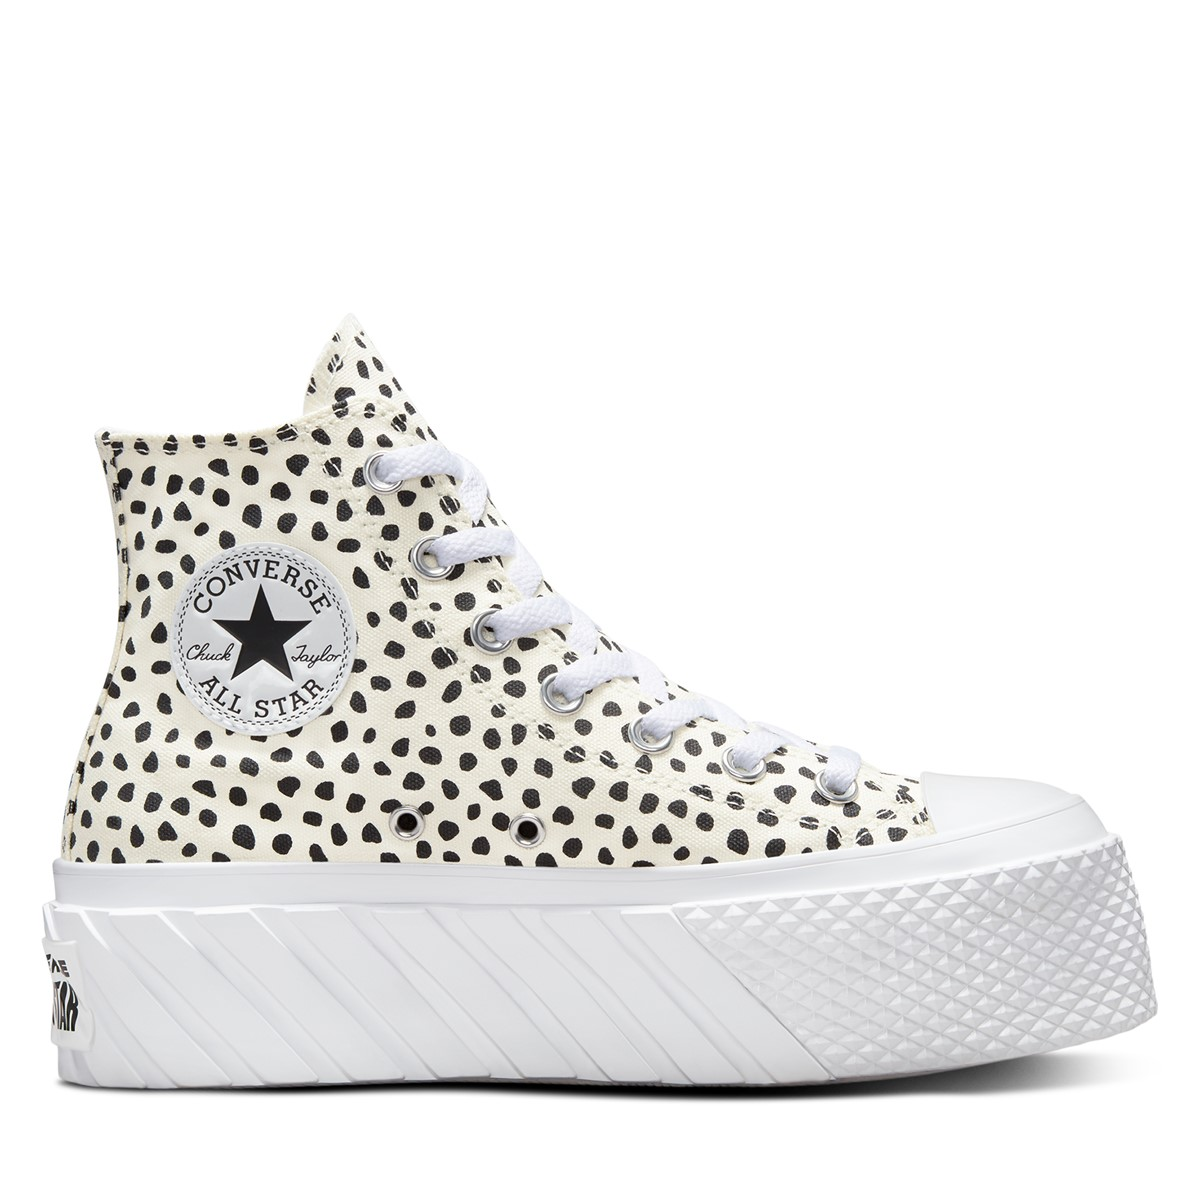 Women's Chuck Taylor All Star Lift X2 Platform High Top Sneakers in Black/ White